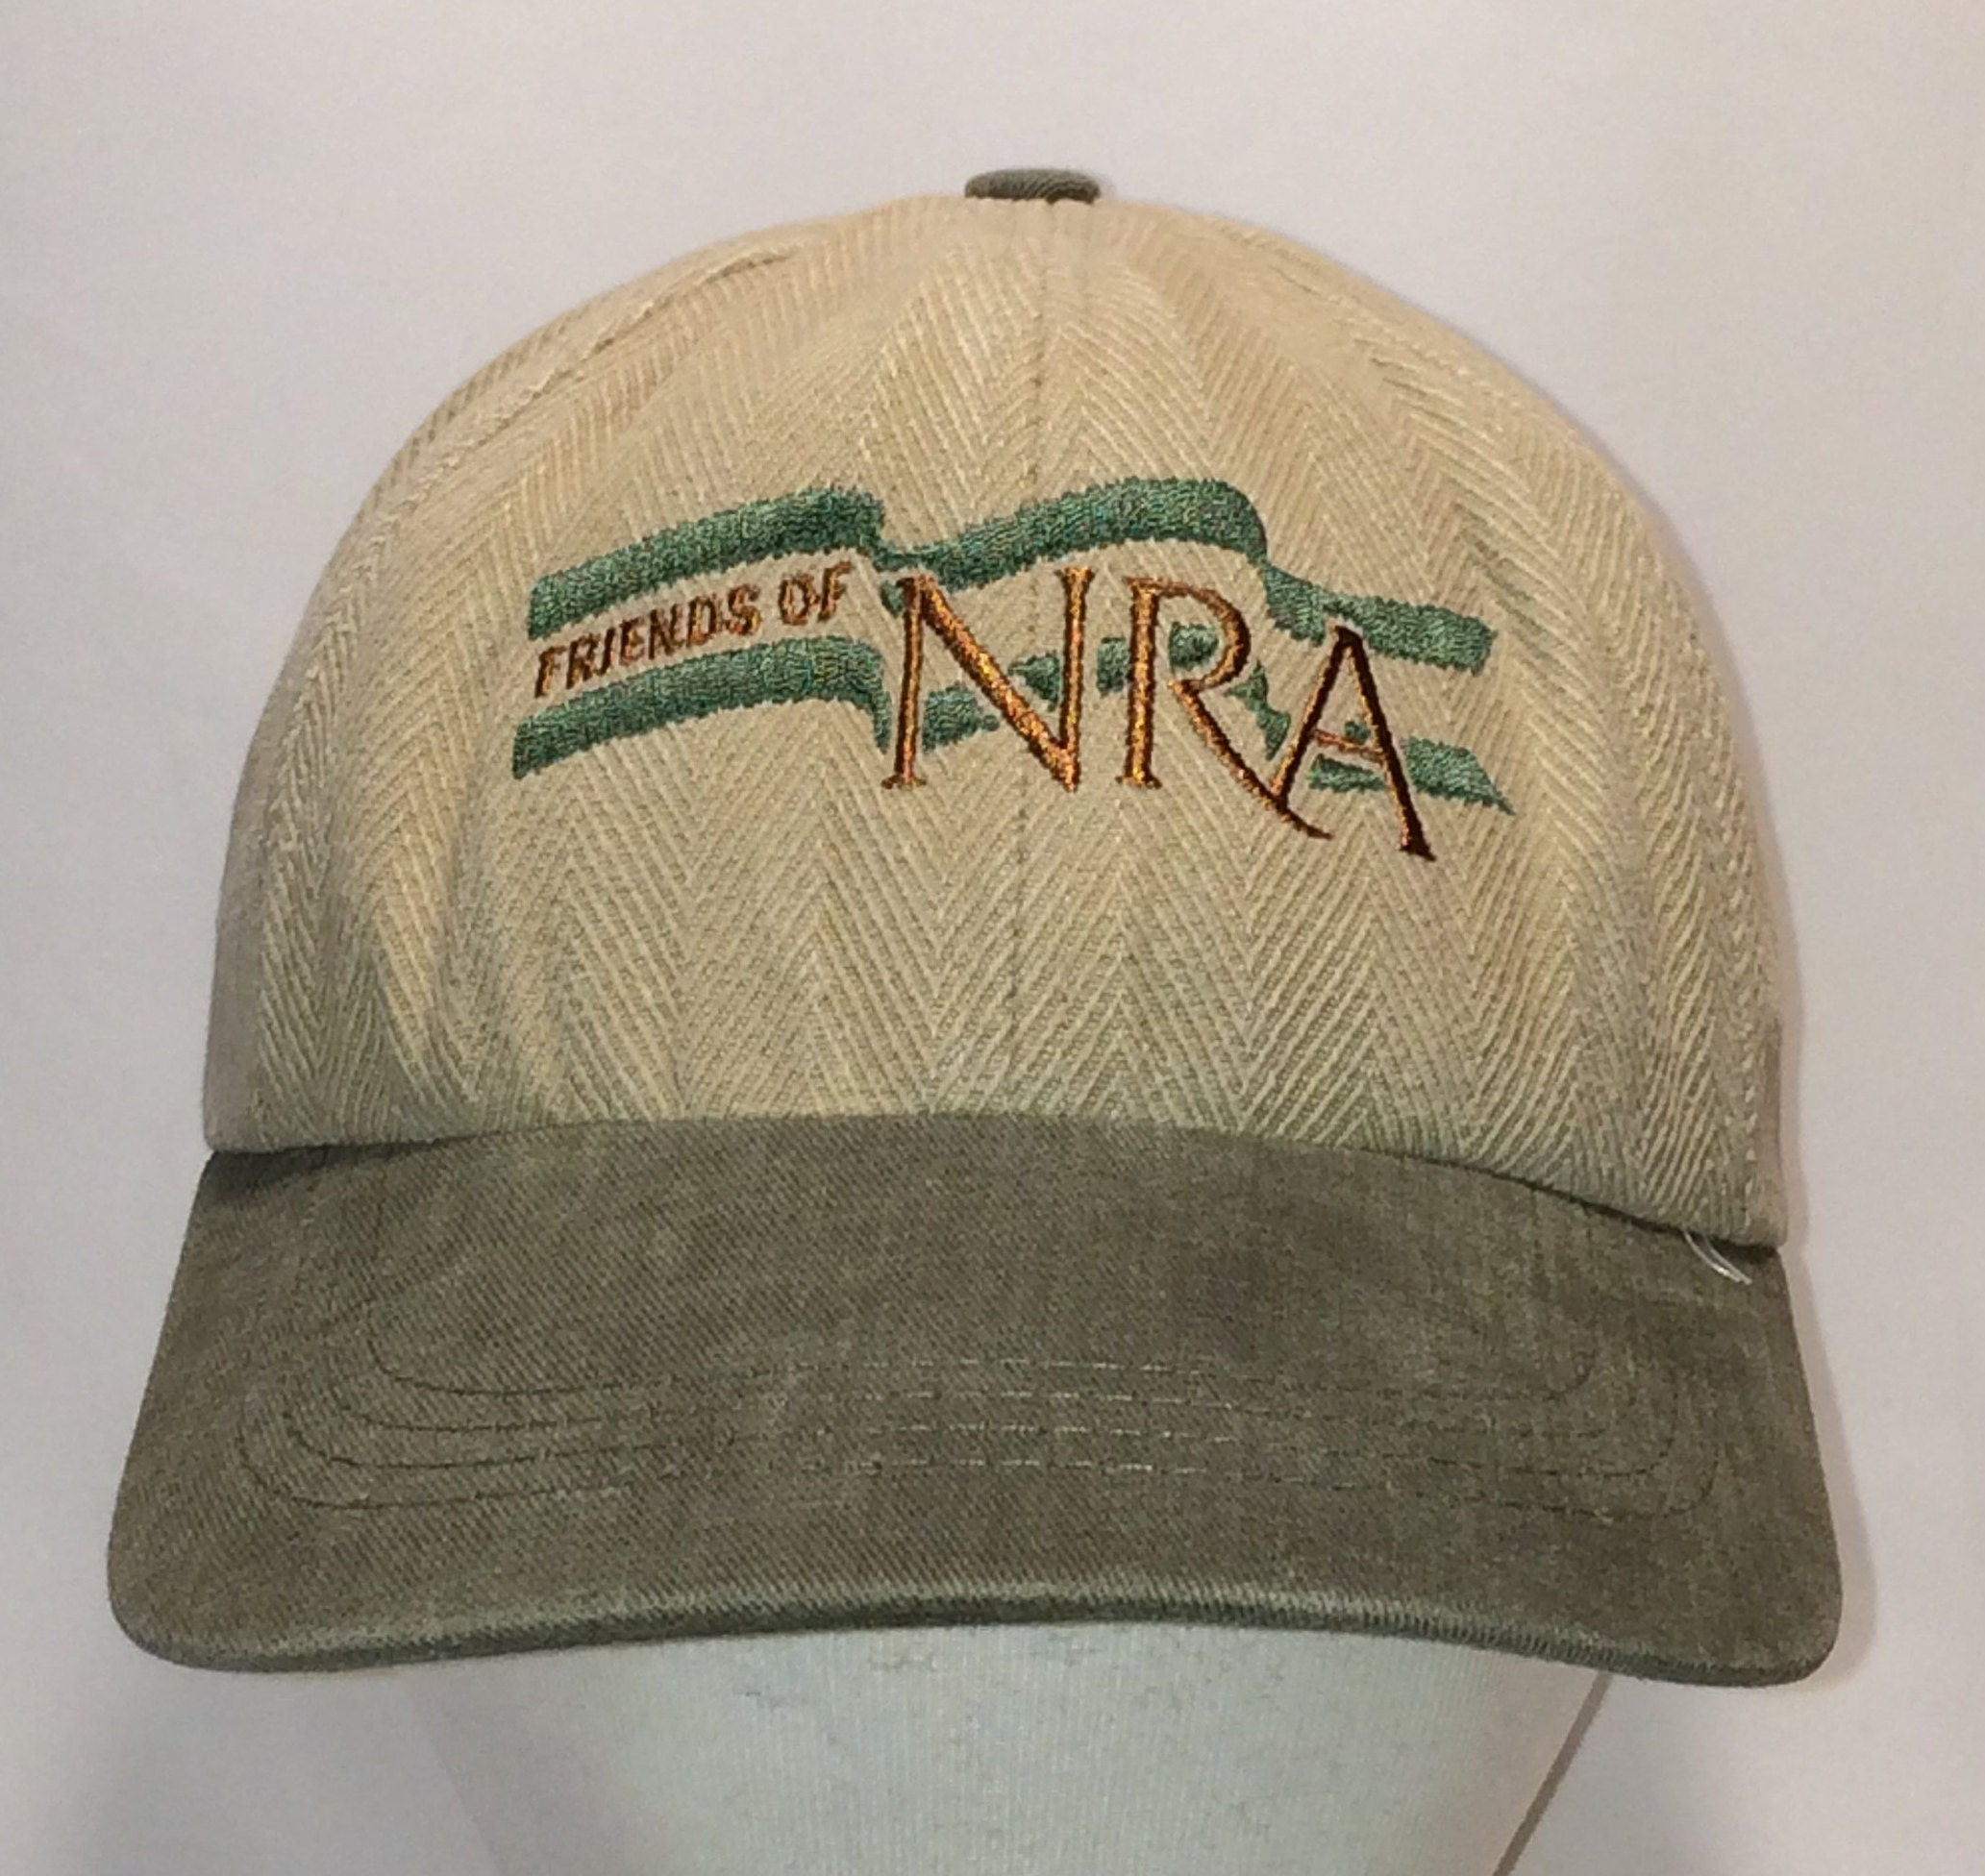 Vintage Baseball Cap Friends of NRA Hat Beige Green National  6174fafd499